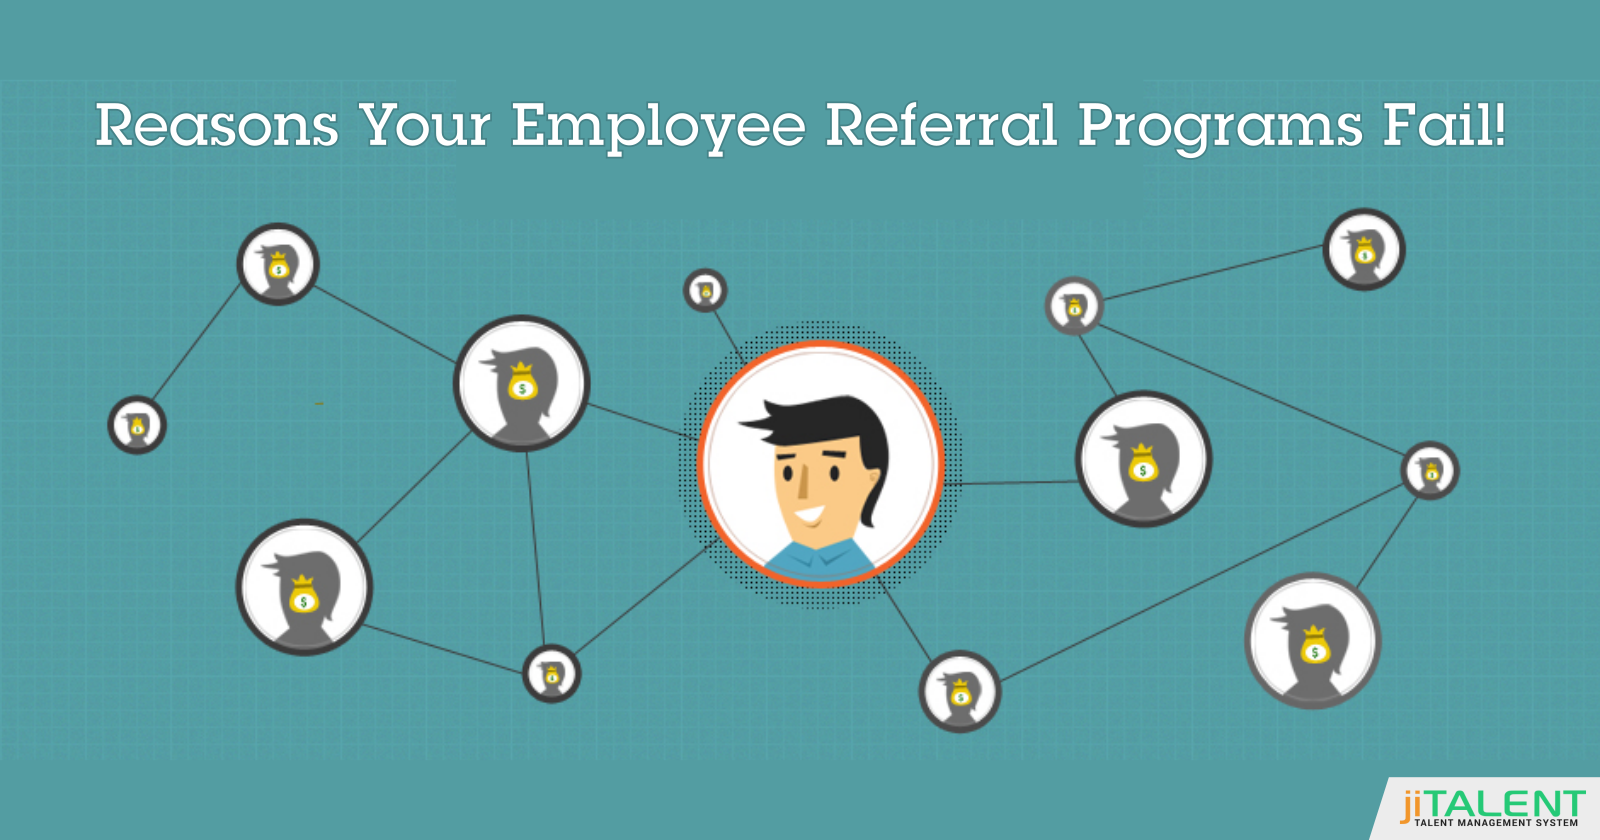 Why Employee Referral Programs Fail